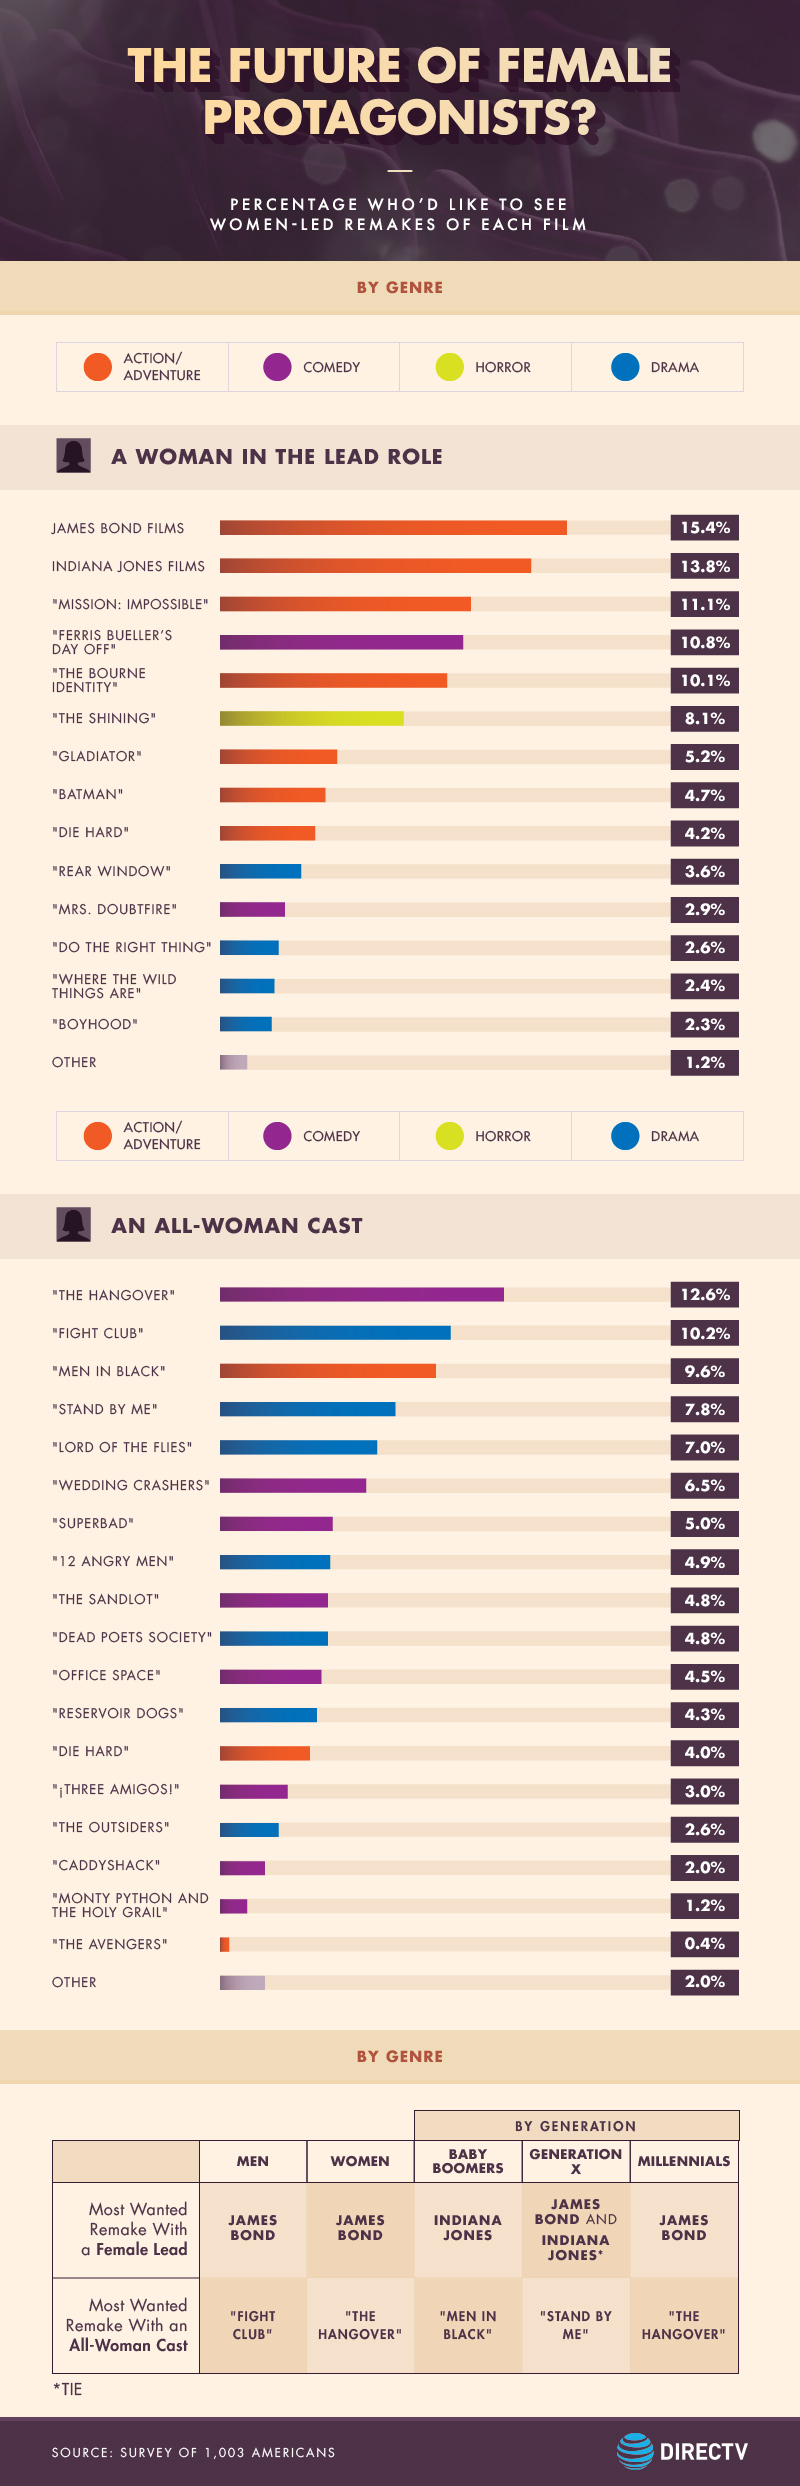 The Future of Female Protagonists? -Percentage Who'd Like To See Women-Led Remakes of Each Film